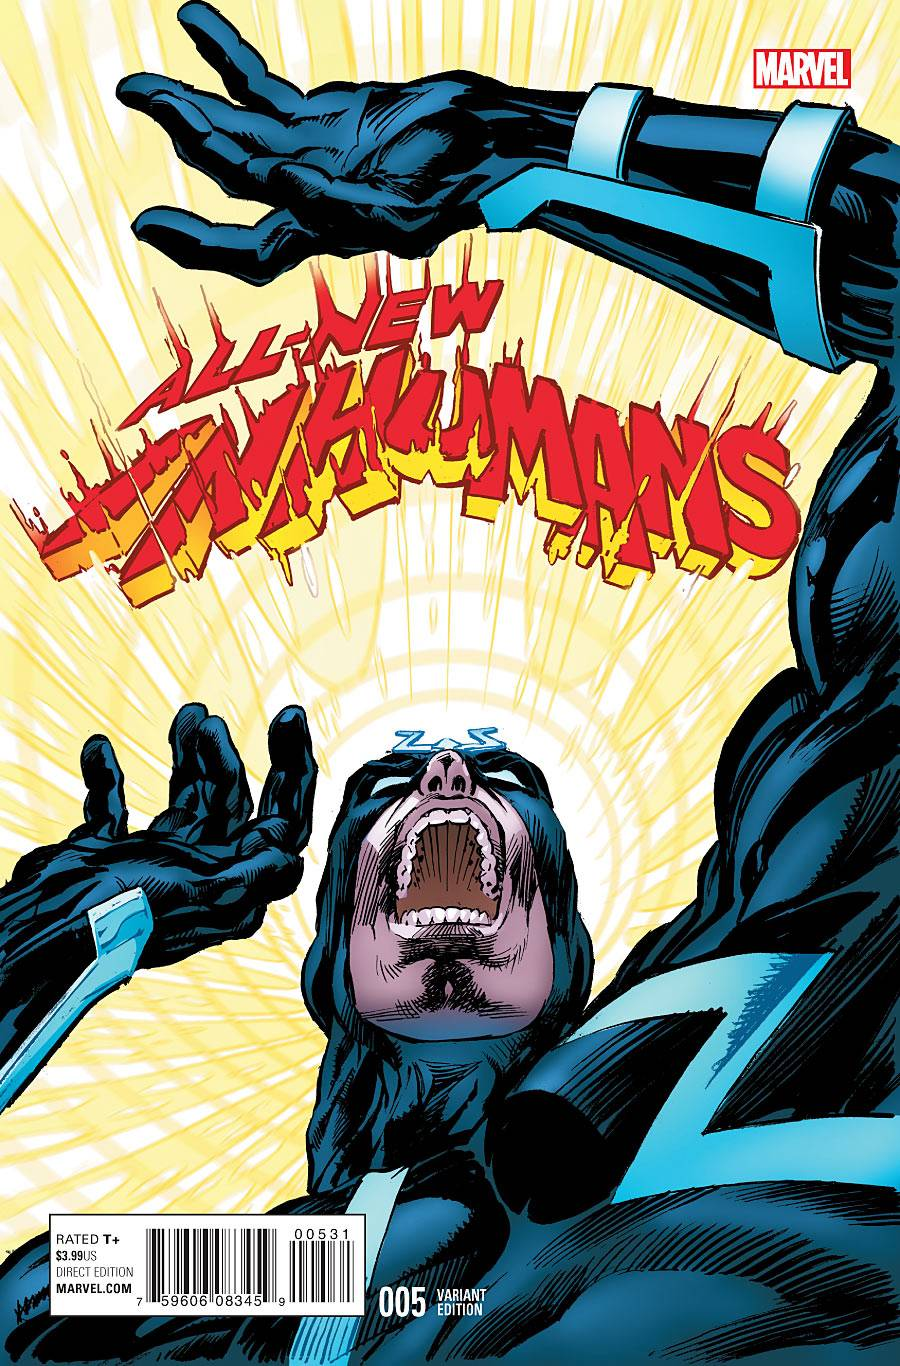 03/16/2016 ALL NEW INHUMANS #5 NEAL ADAMS CLASSIC 1:15 VARIANT